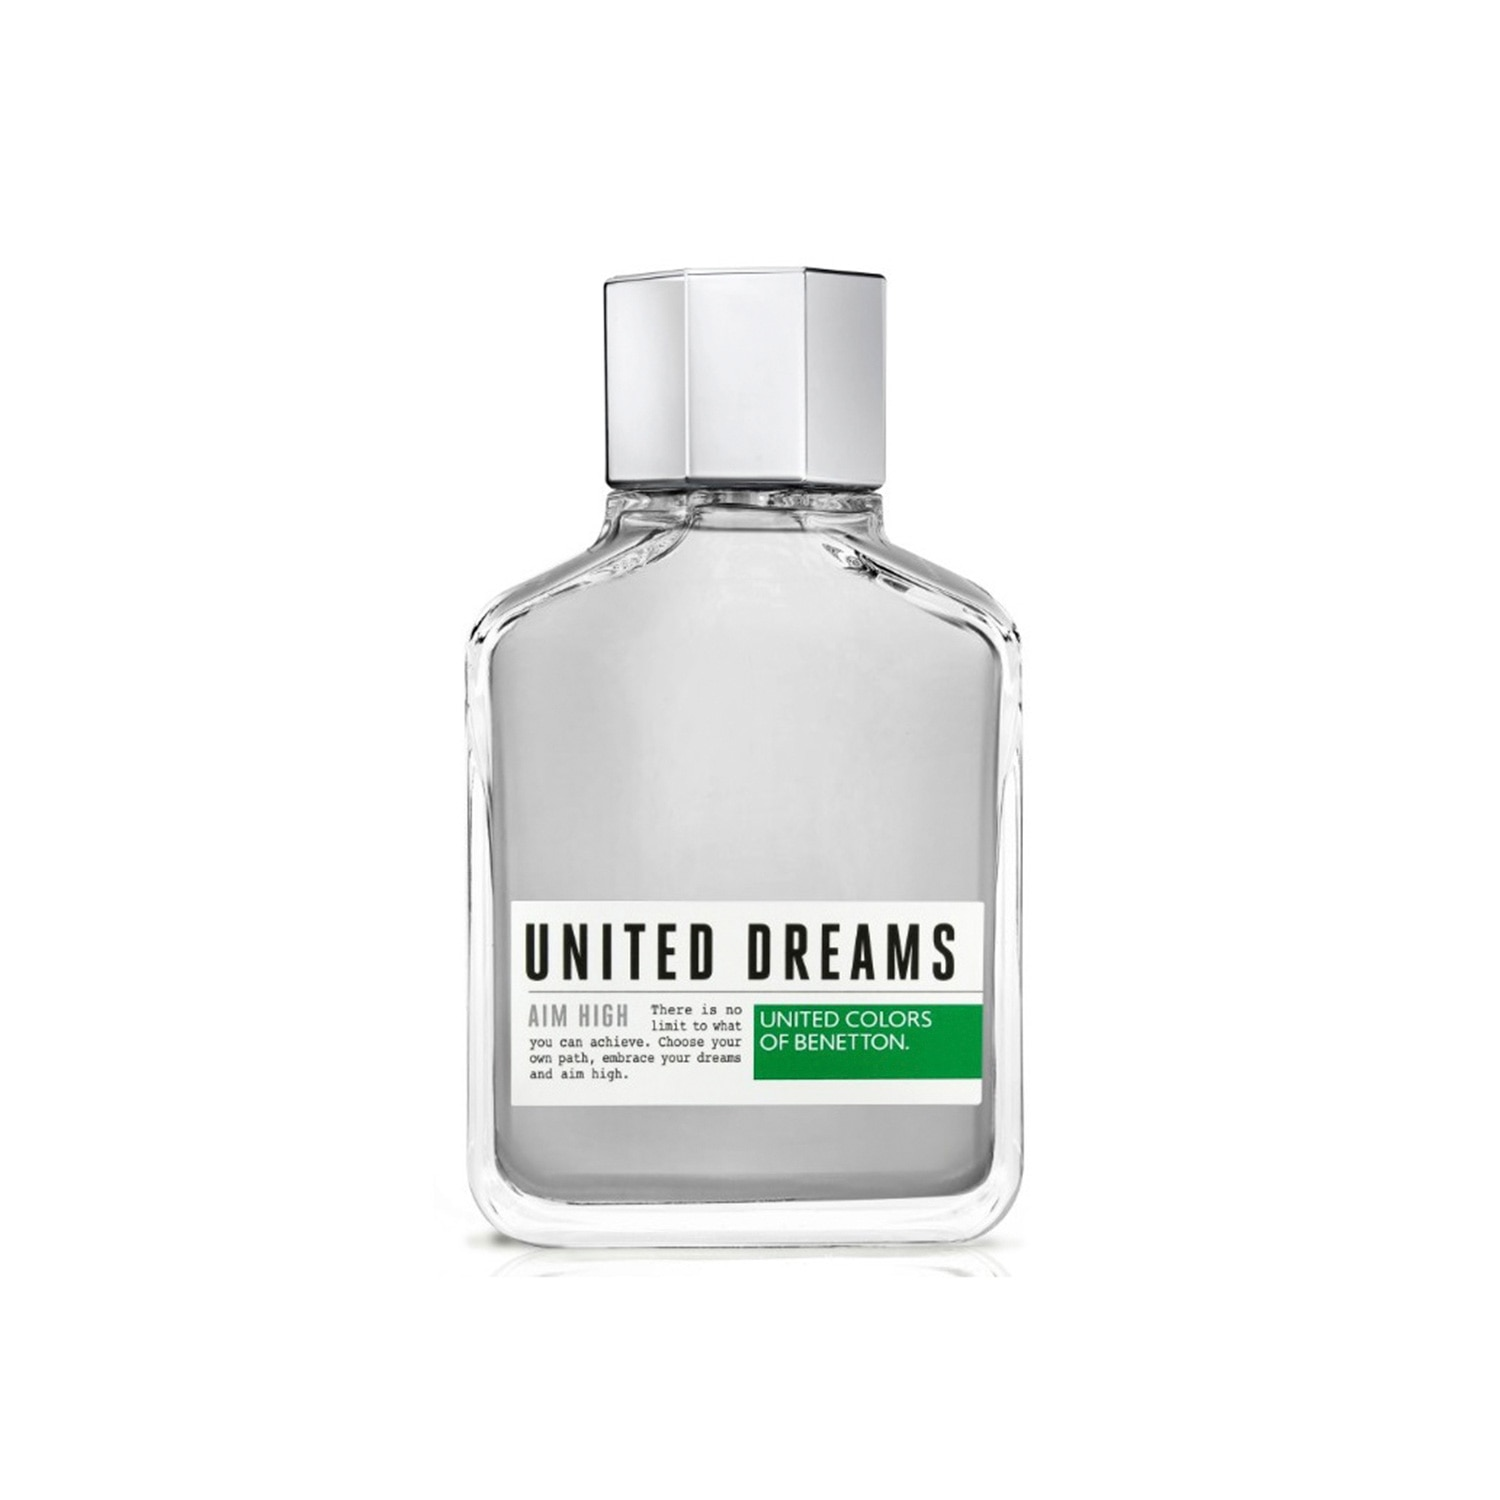 UNITED DREAMS AIM HIGH EAU DE TOILETTE 100 ML